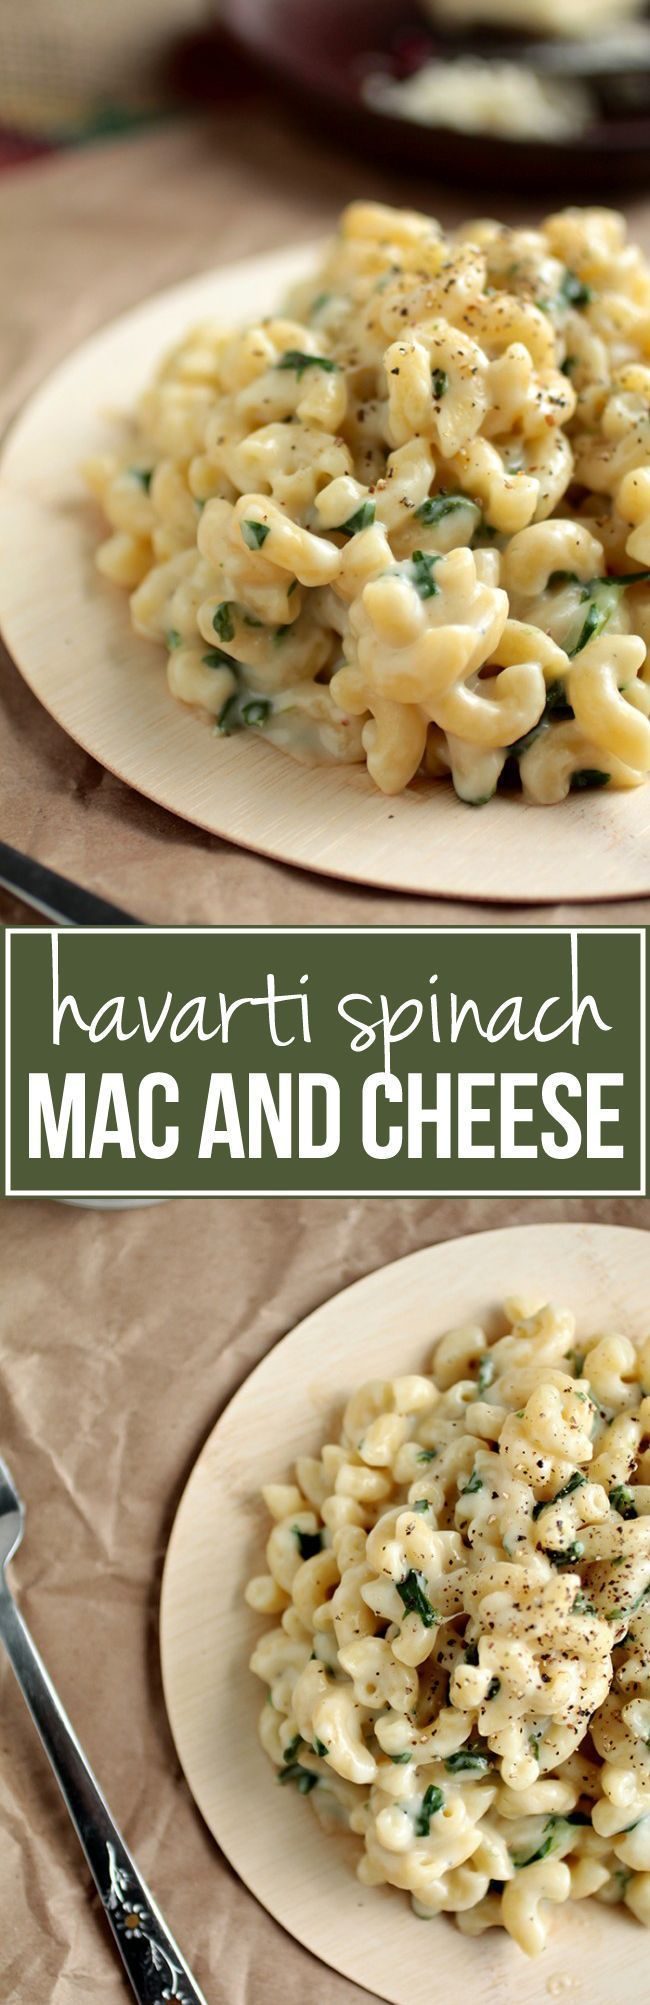 Spinach Mac and Cheese Havarti Spinach Mac and Cheese | One of my FAVORITE mac and cheese recipes! Havarti cheese makes this mac and cheese almost impossibly creamy, and fresh spinach lends a delicious fresh flavor. Ready in just 30 minutes, and vegetarian!Havarti Spinach Mac and Cheese | One of my FAVORITE mac and cheese recipes! Havarti cheese make...